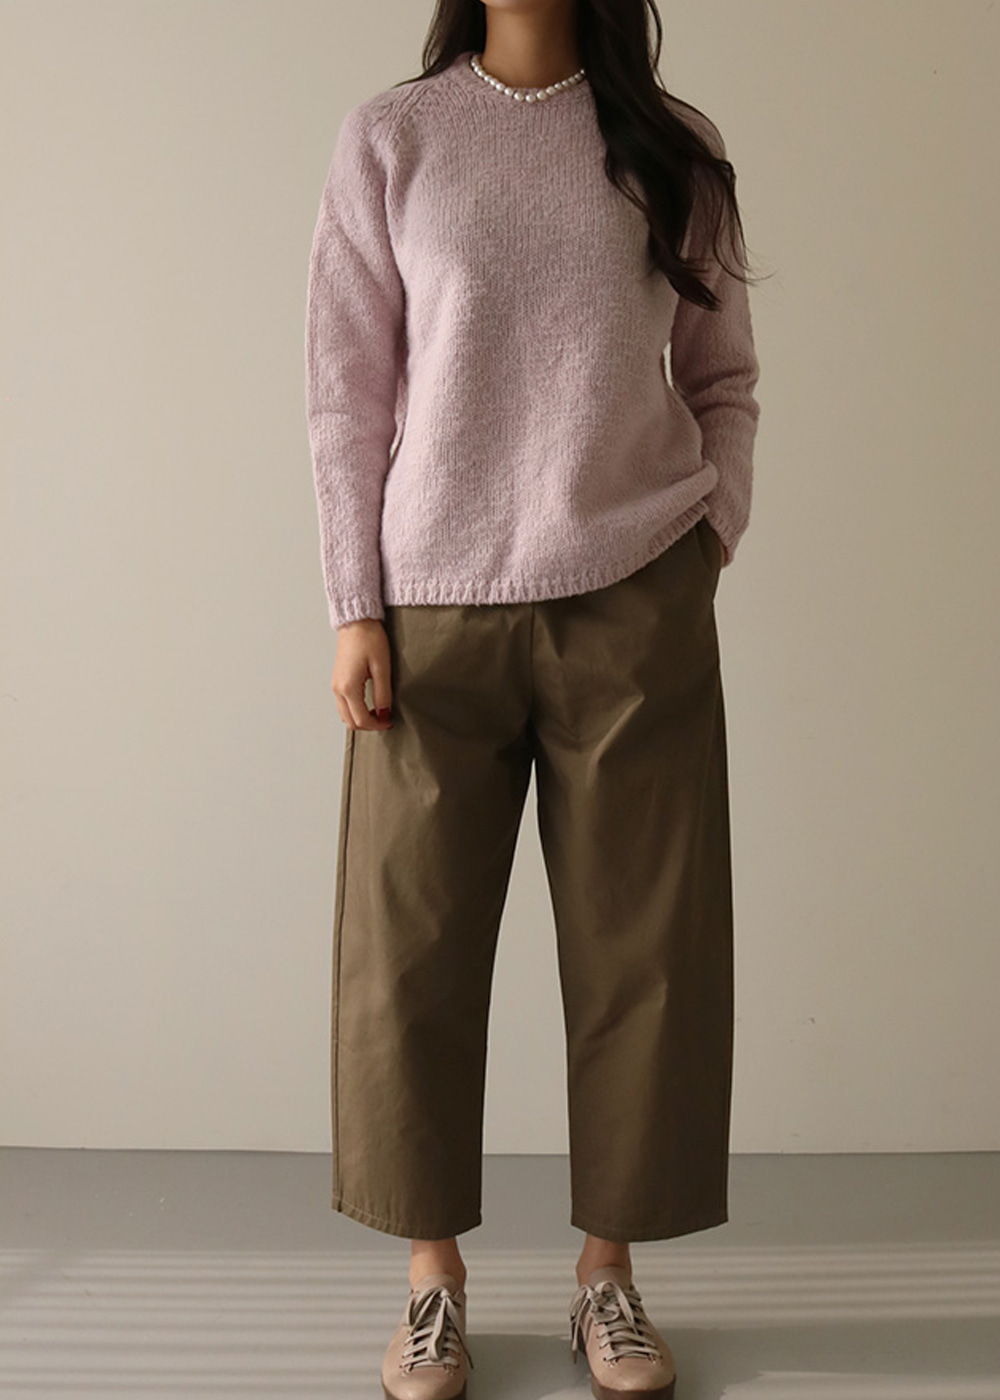 ALPACA WOOL KNIT TOP - pink